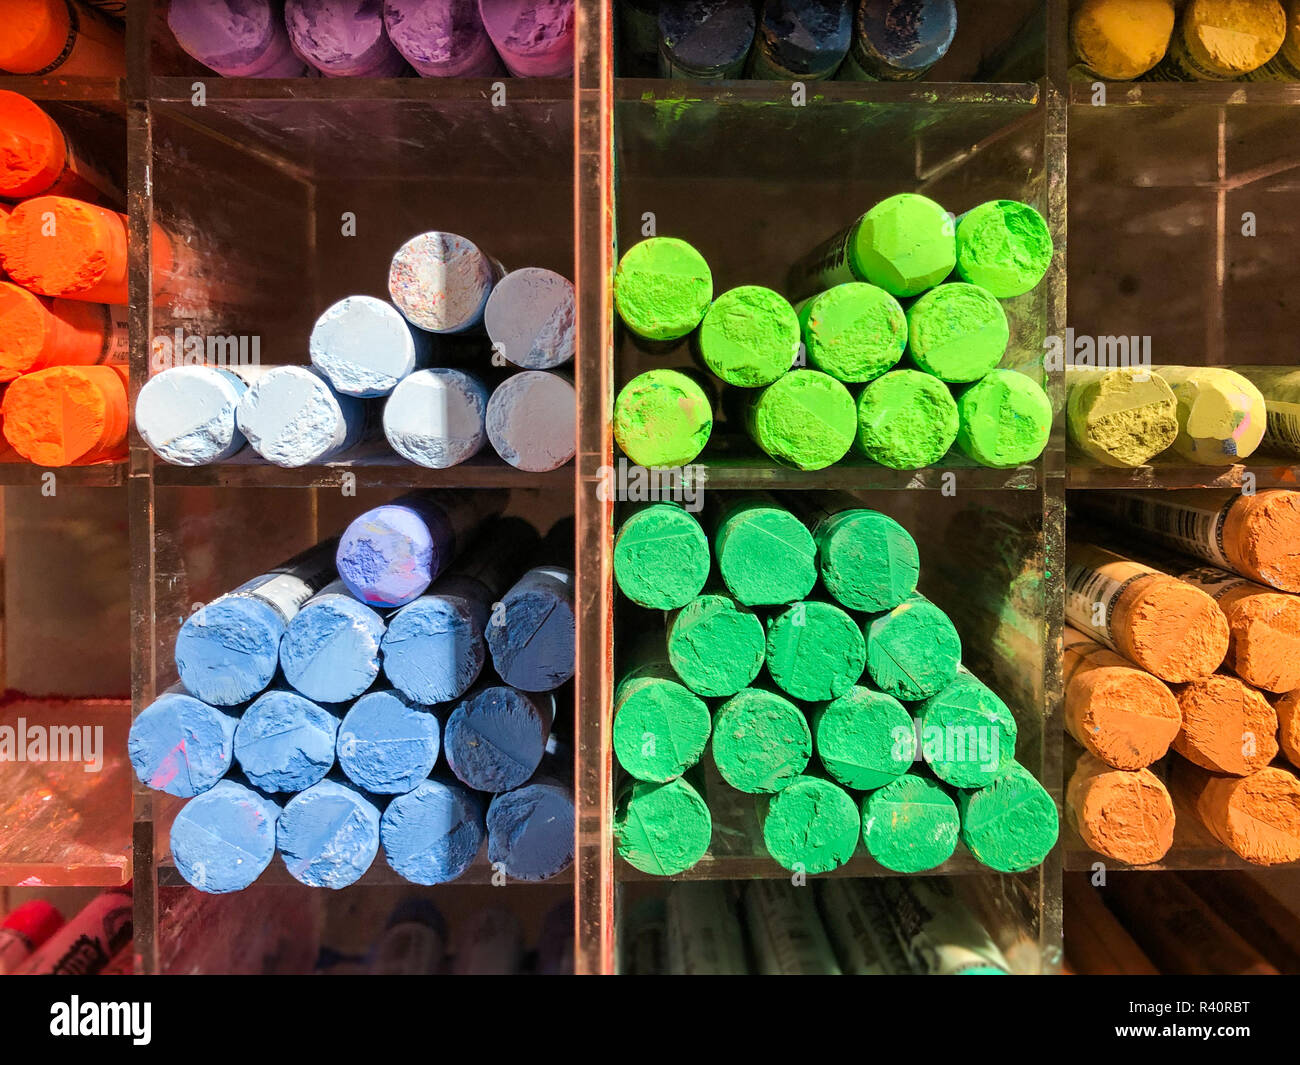 wax crayons many colors - multicolored pens in shelf - Stock Image